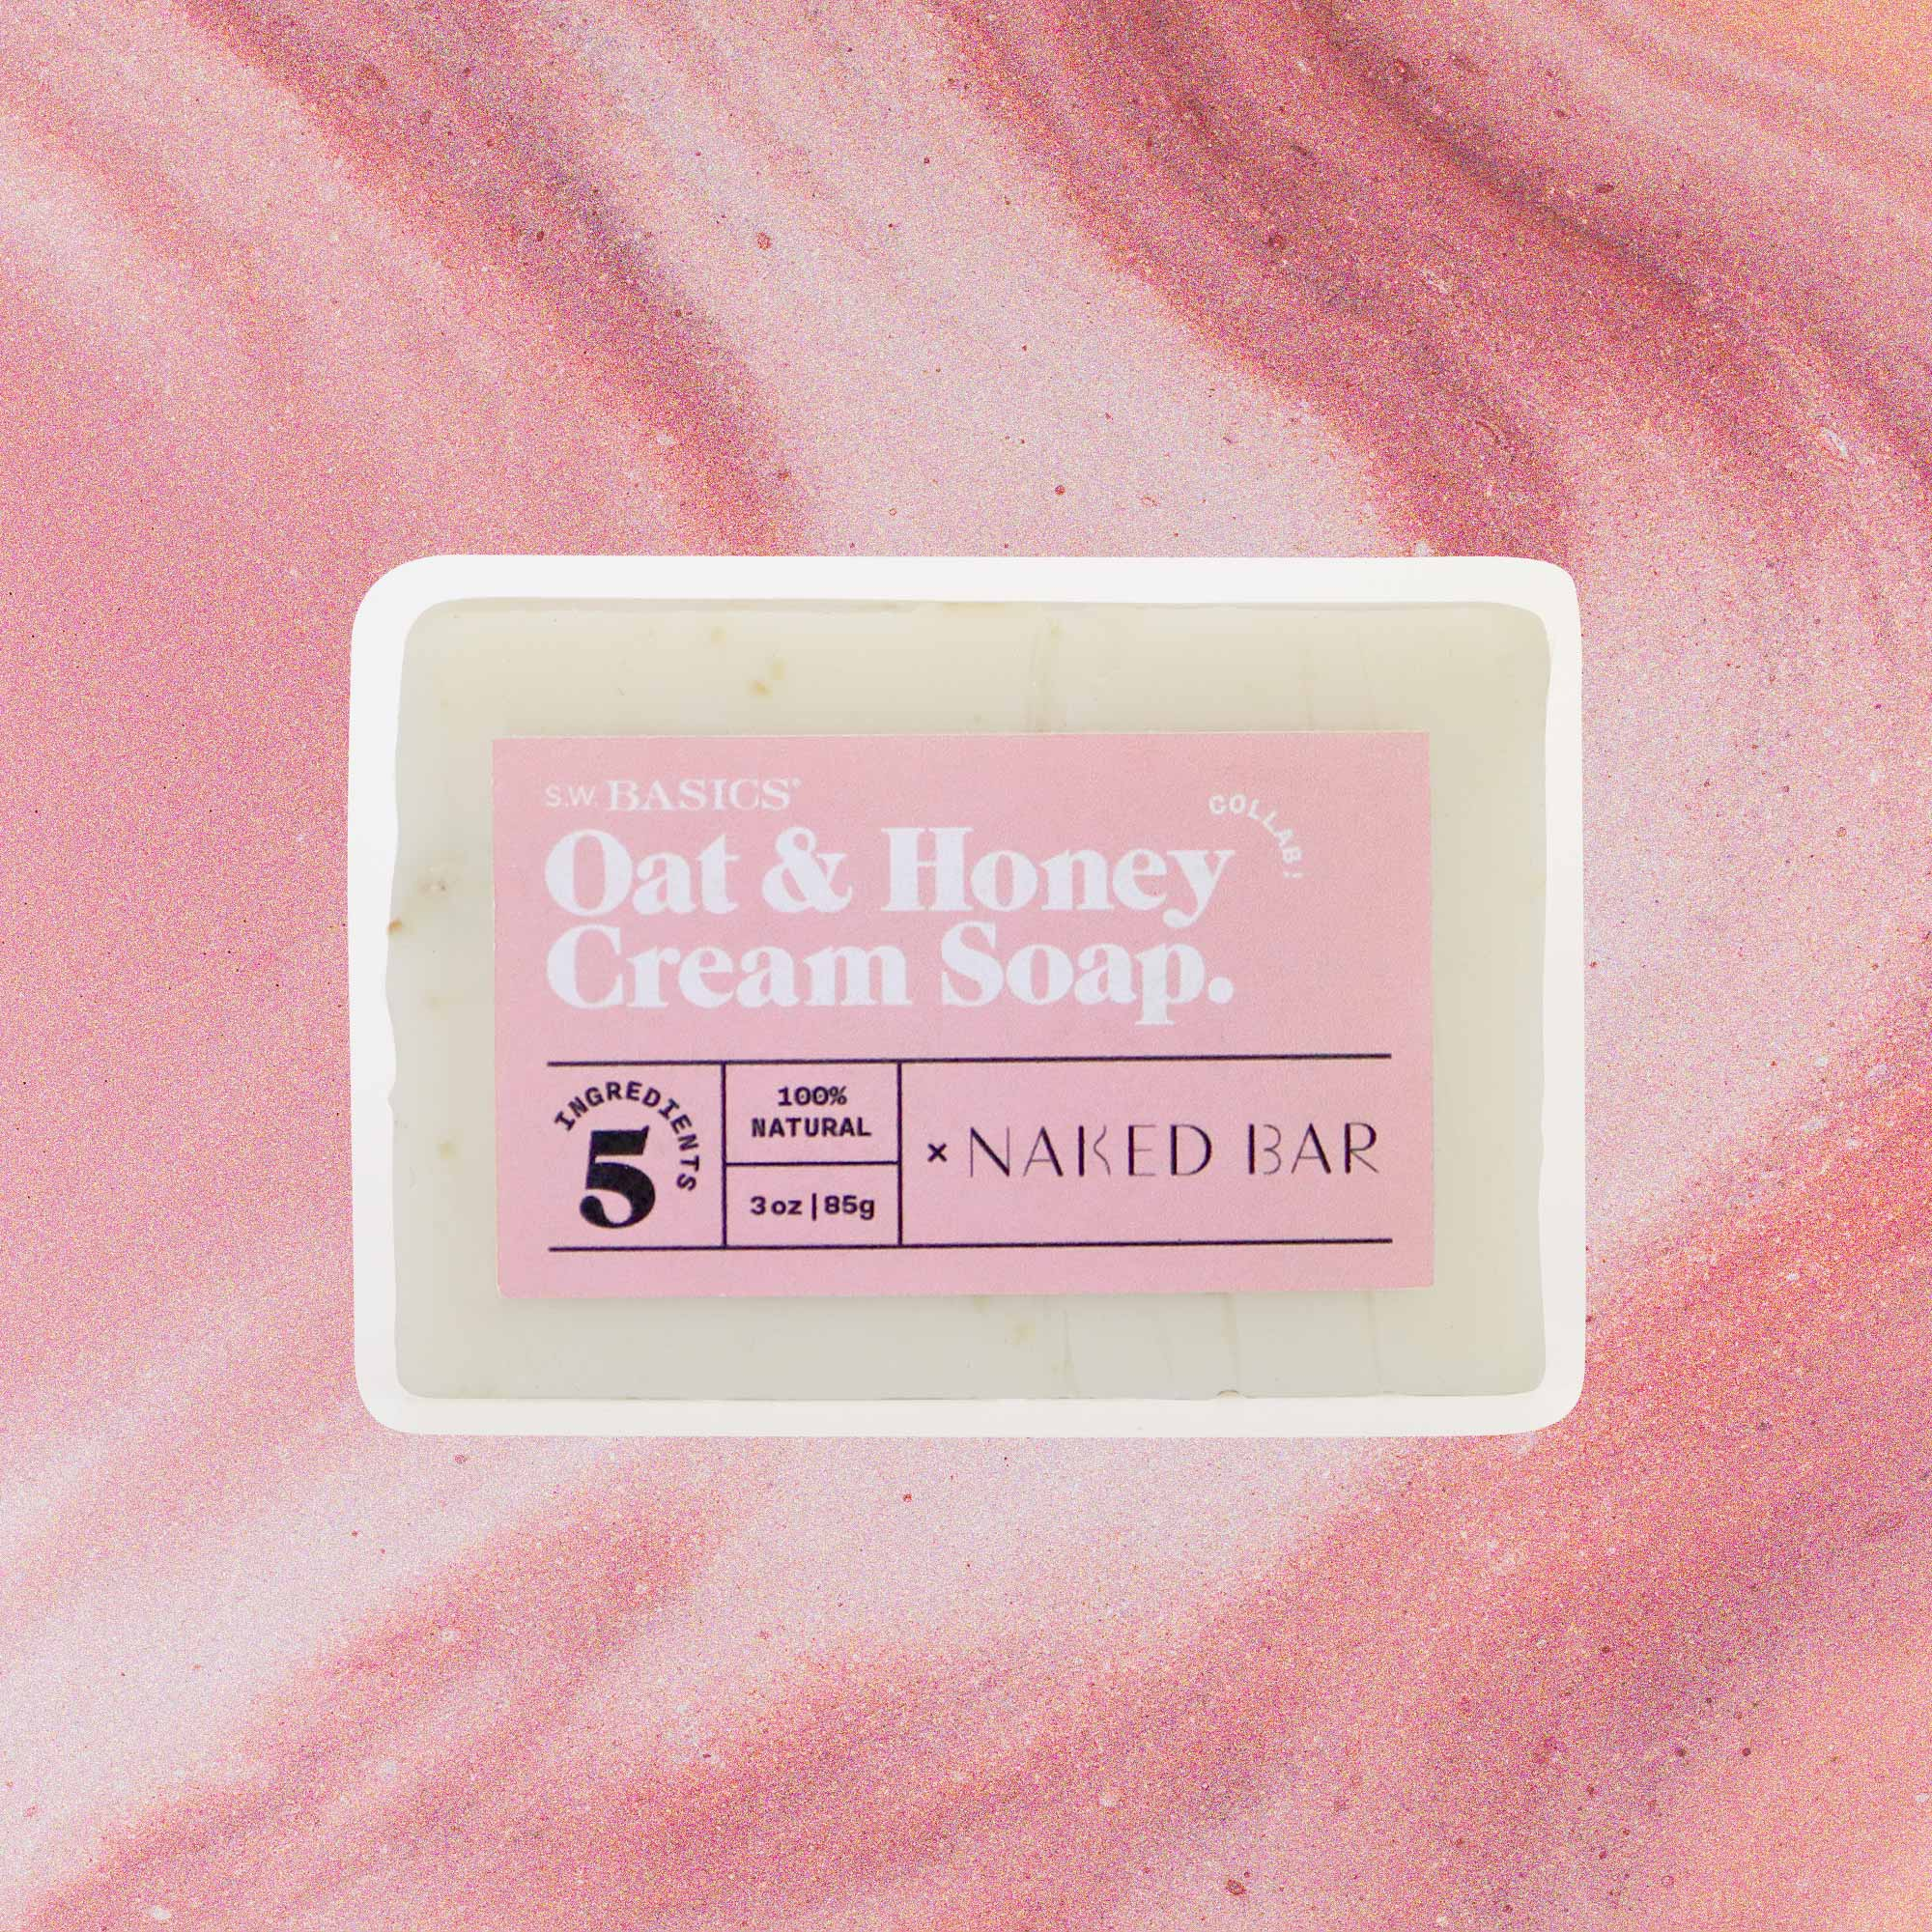 S.W. Basics x Naked Bar Soap Co. Oat & Honey Cream Soap.